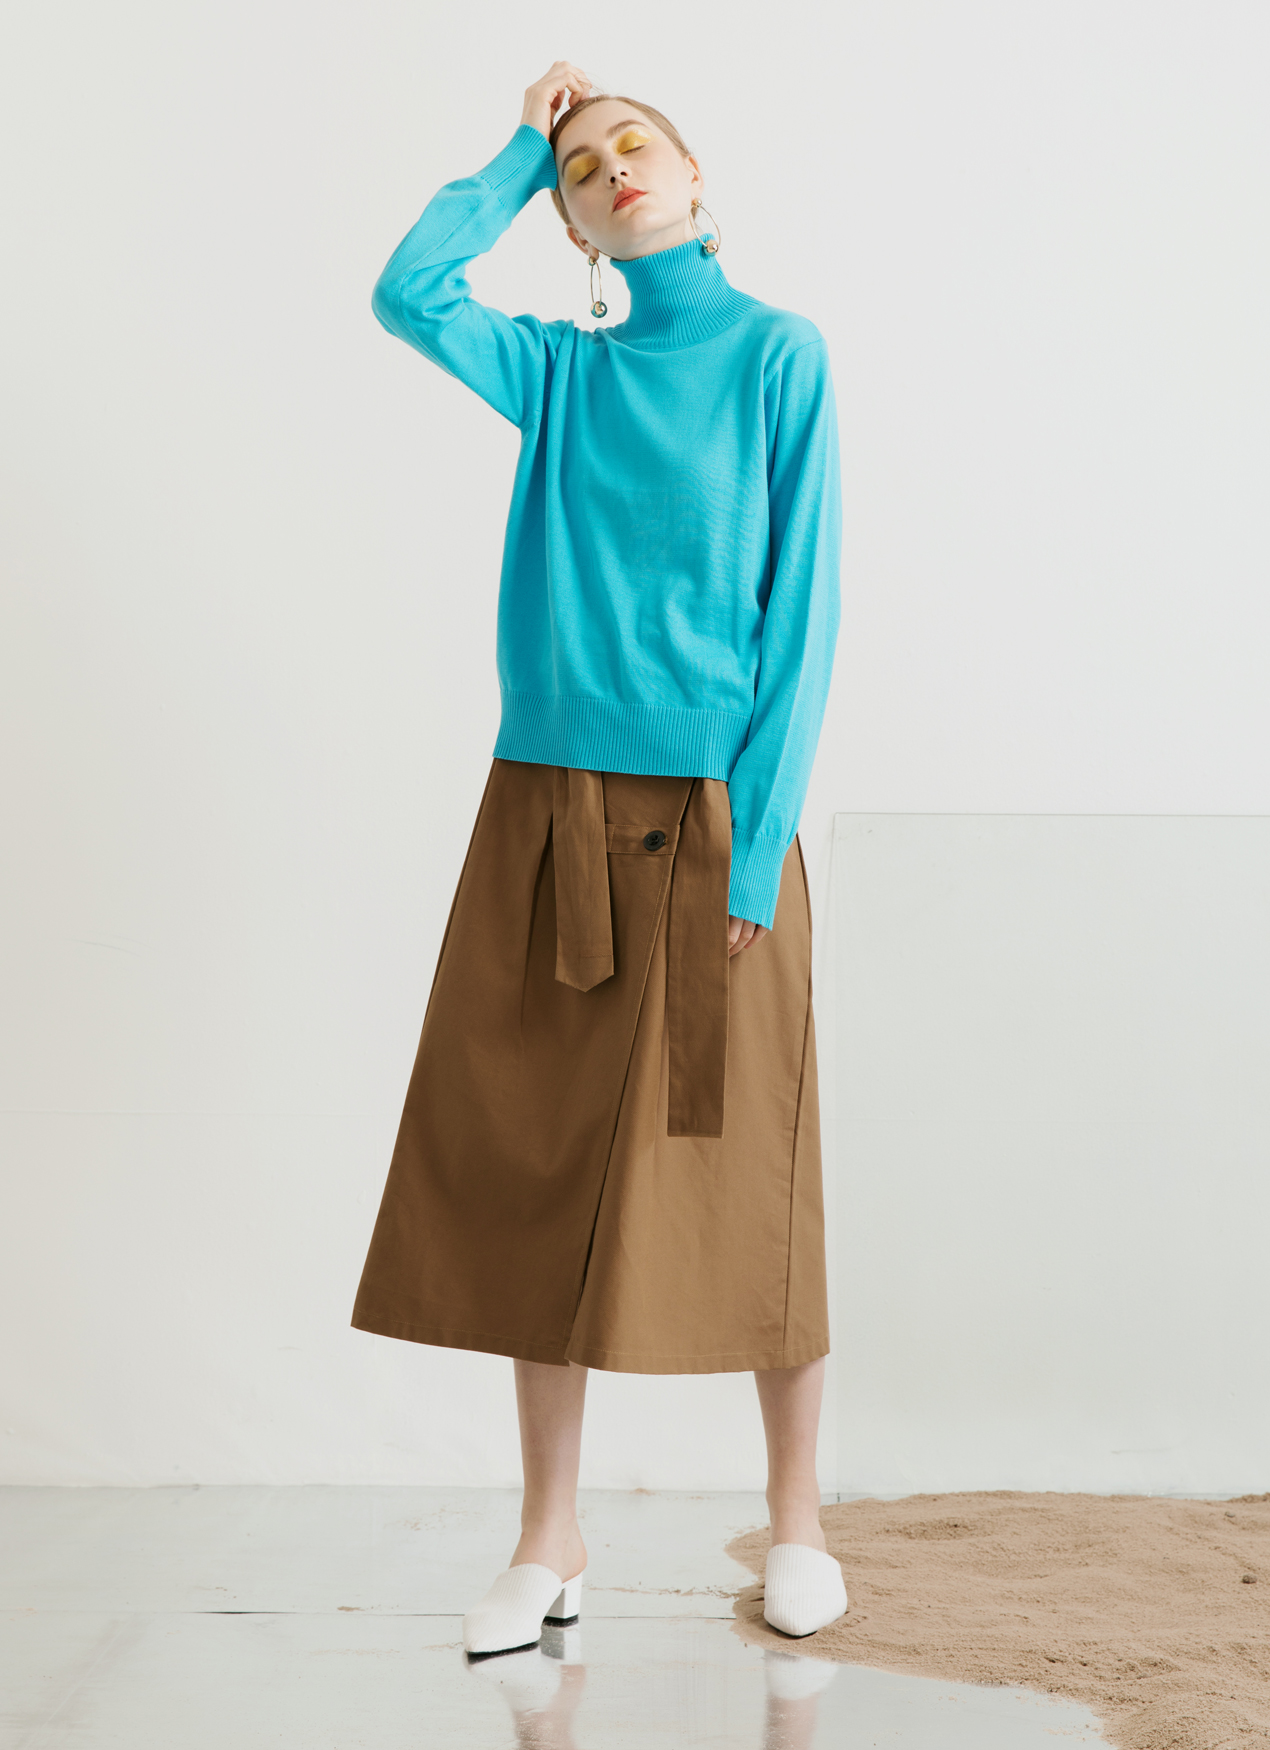 ATS THE LABEL Unica Turquoise Sweater - Turquoise